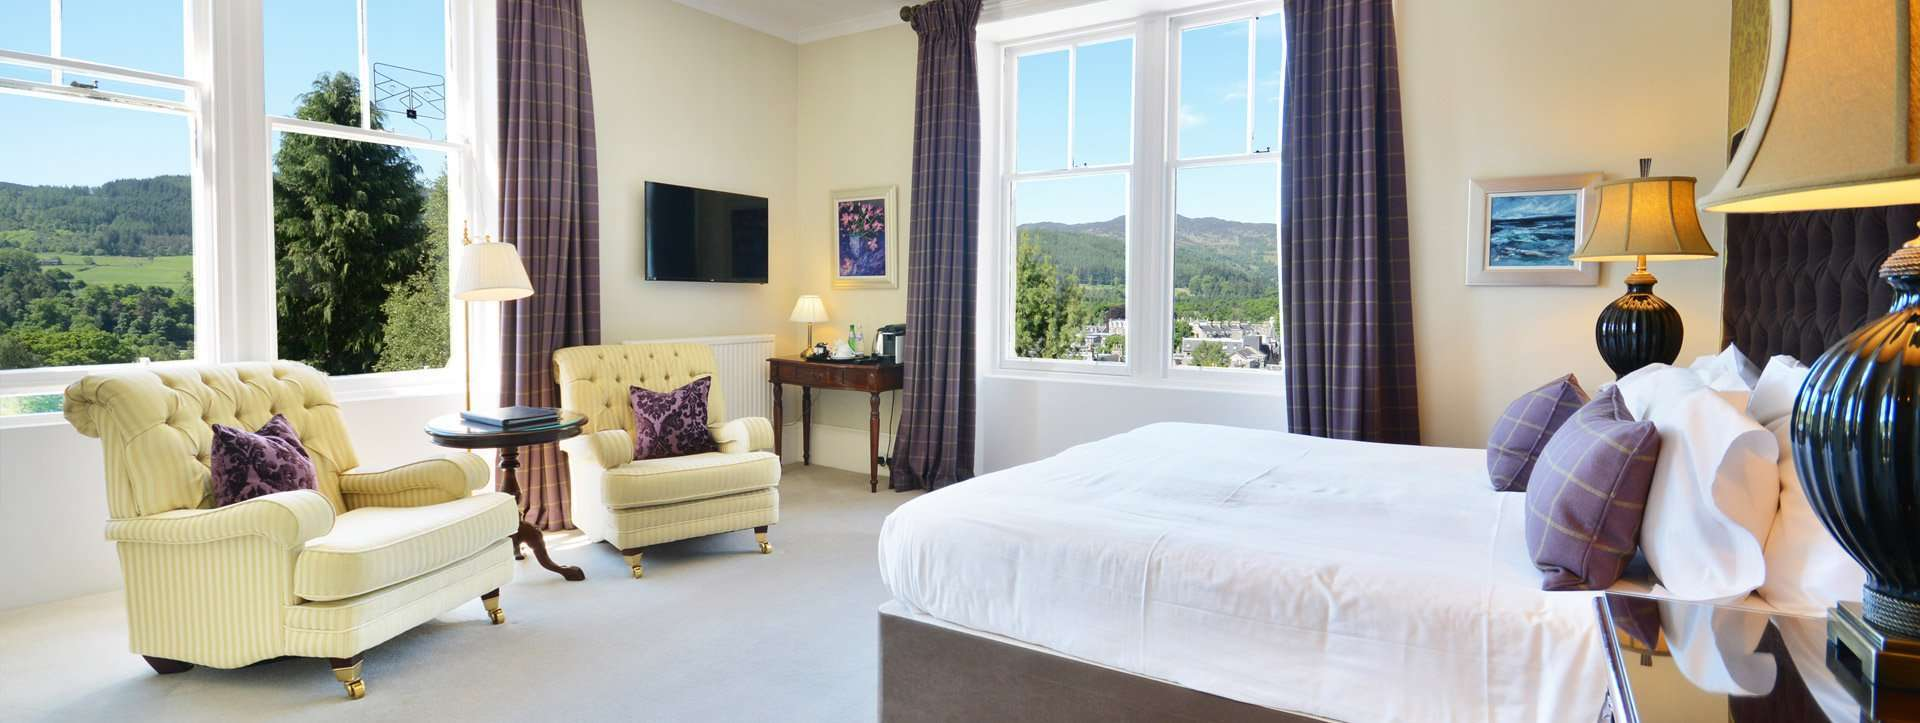 pitlochry hotel with awards